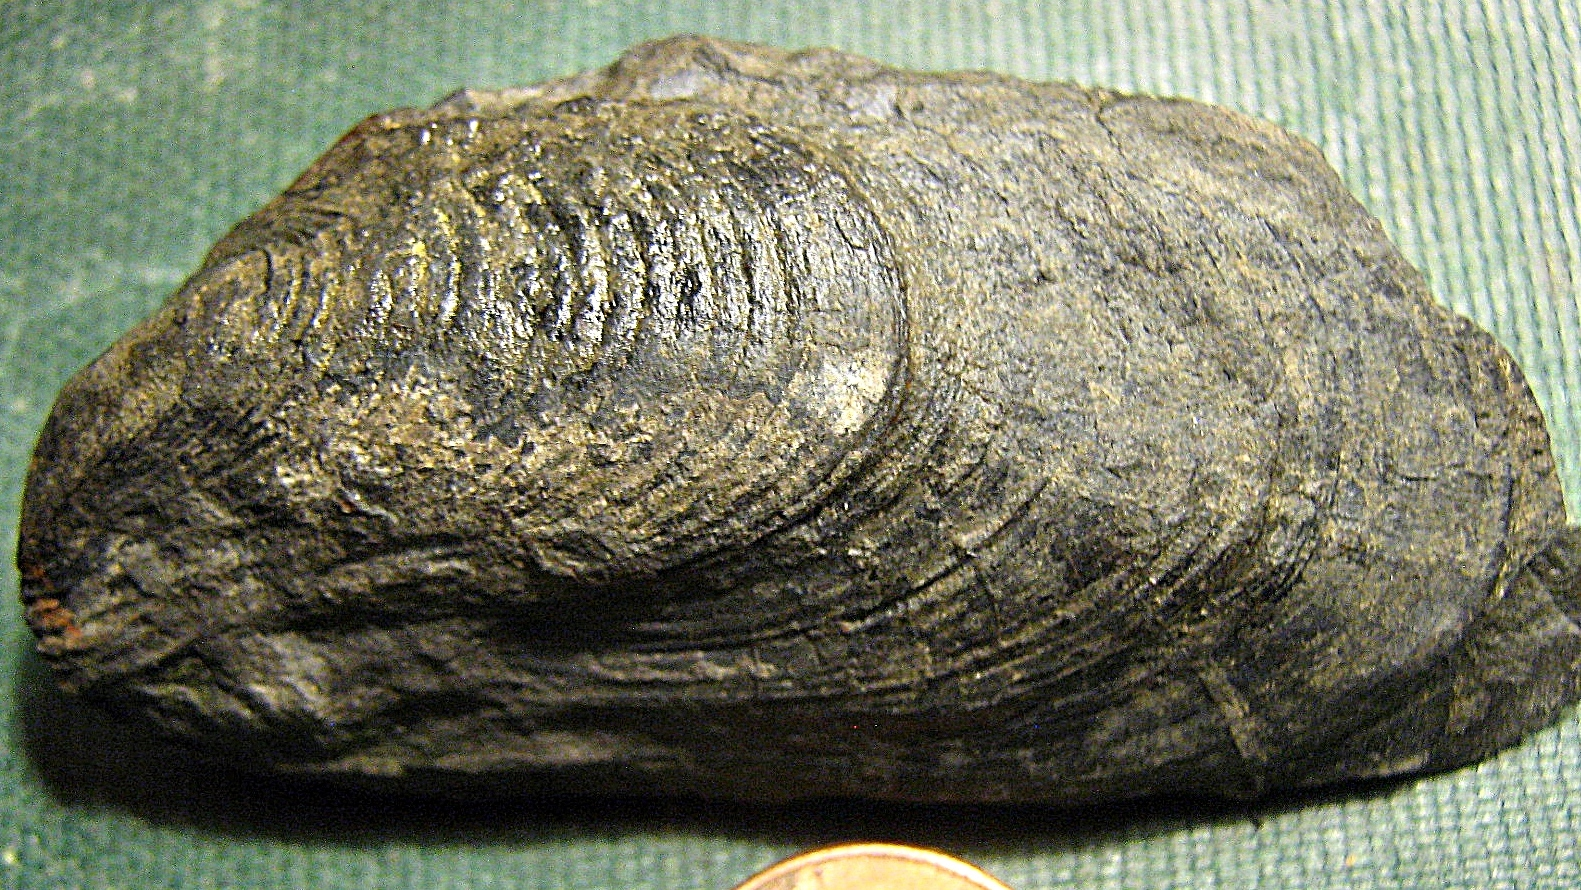 Palaeoheterodonta Bivalve from the Marcellus Shale, Madison Co,, NY.